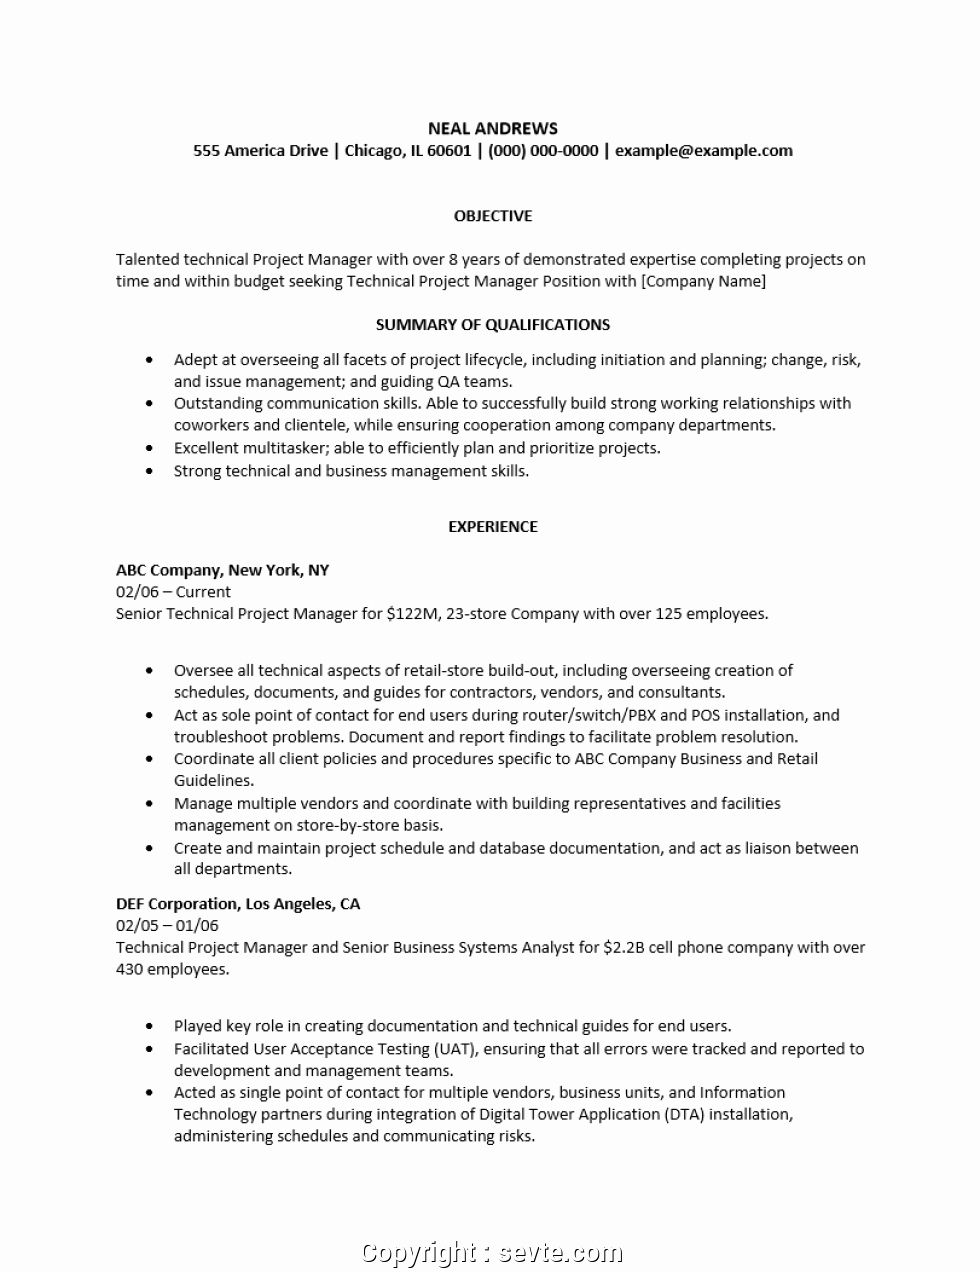 Project Manager Resume Sample Doc Best Of Make It Project Manager Resume Sample Pdf Project Manager Project Manager Resume Manager Resume Good Resume Examples